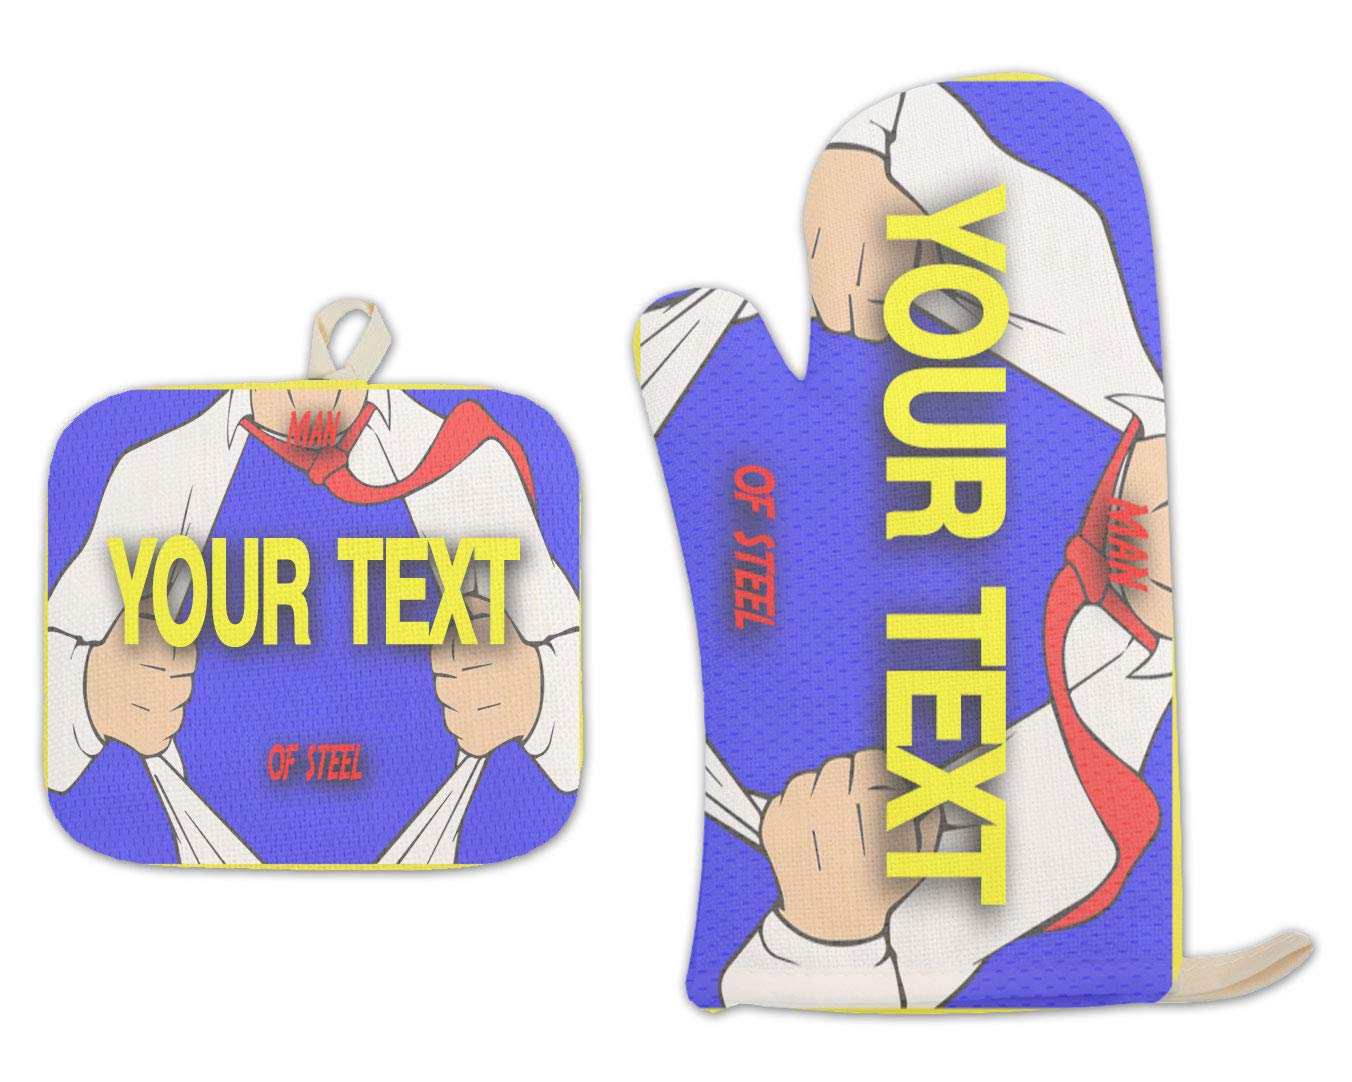 BRGiftShop Personalized Custom Name Superhero Series: Man of Steel Blue and Red Linen Oven Mitt and Potholder Set